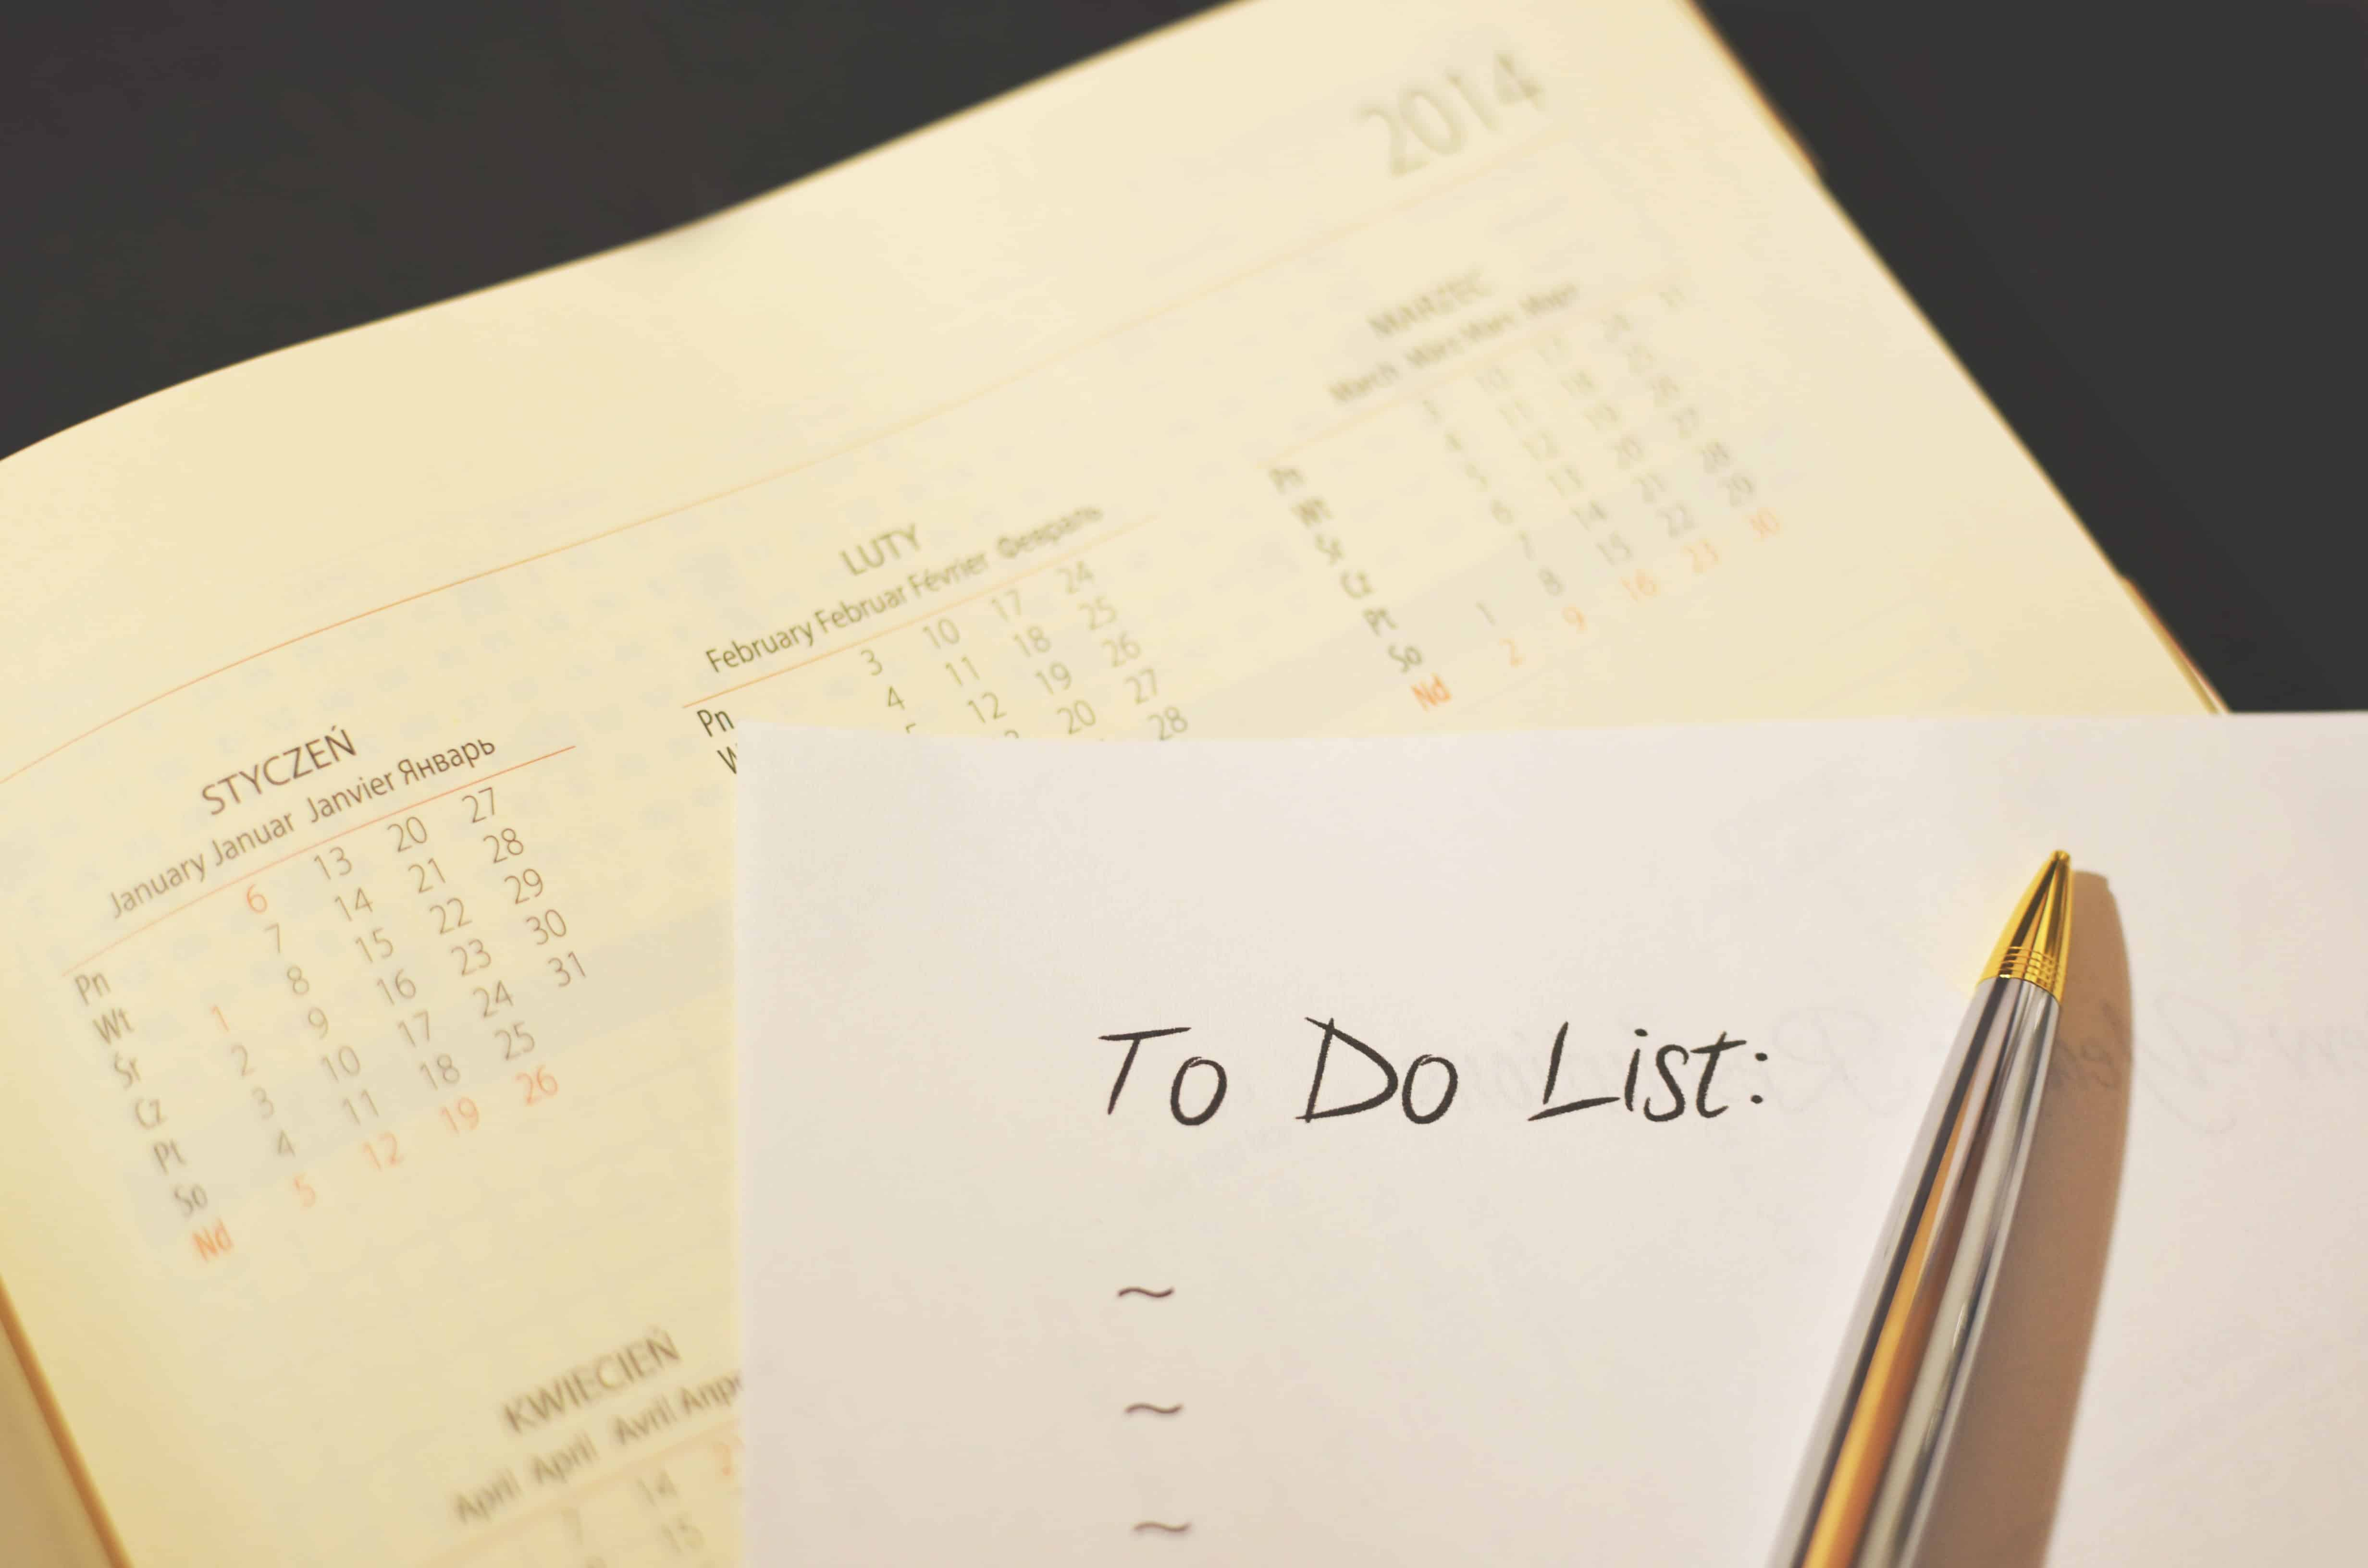 To Do List: Staying Organized productivity Organizing Your Daily Life: Daily Disciplines and Good Habits pen calendar to do checklist